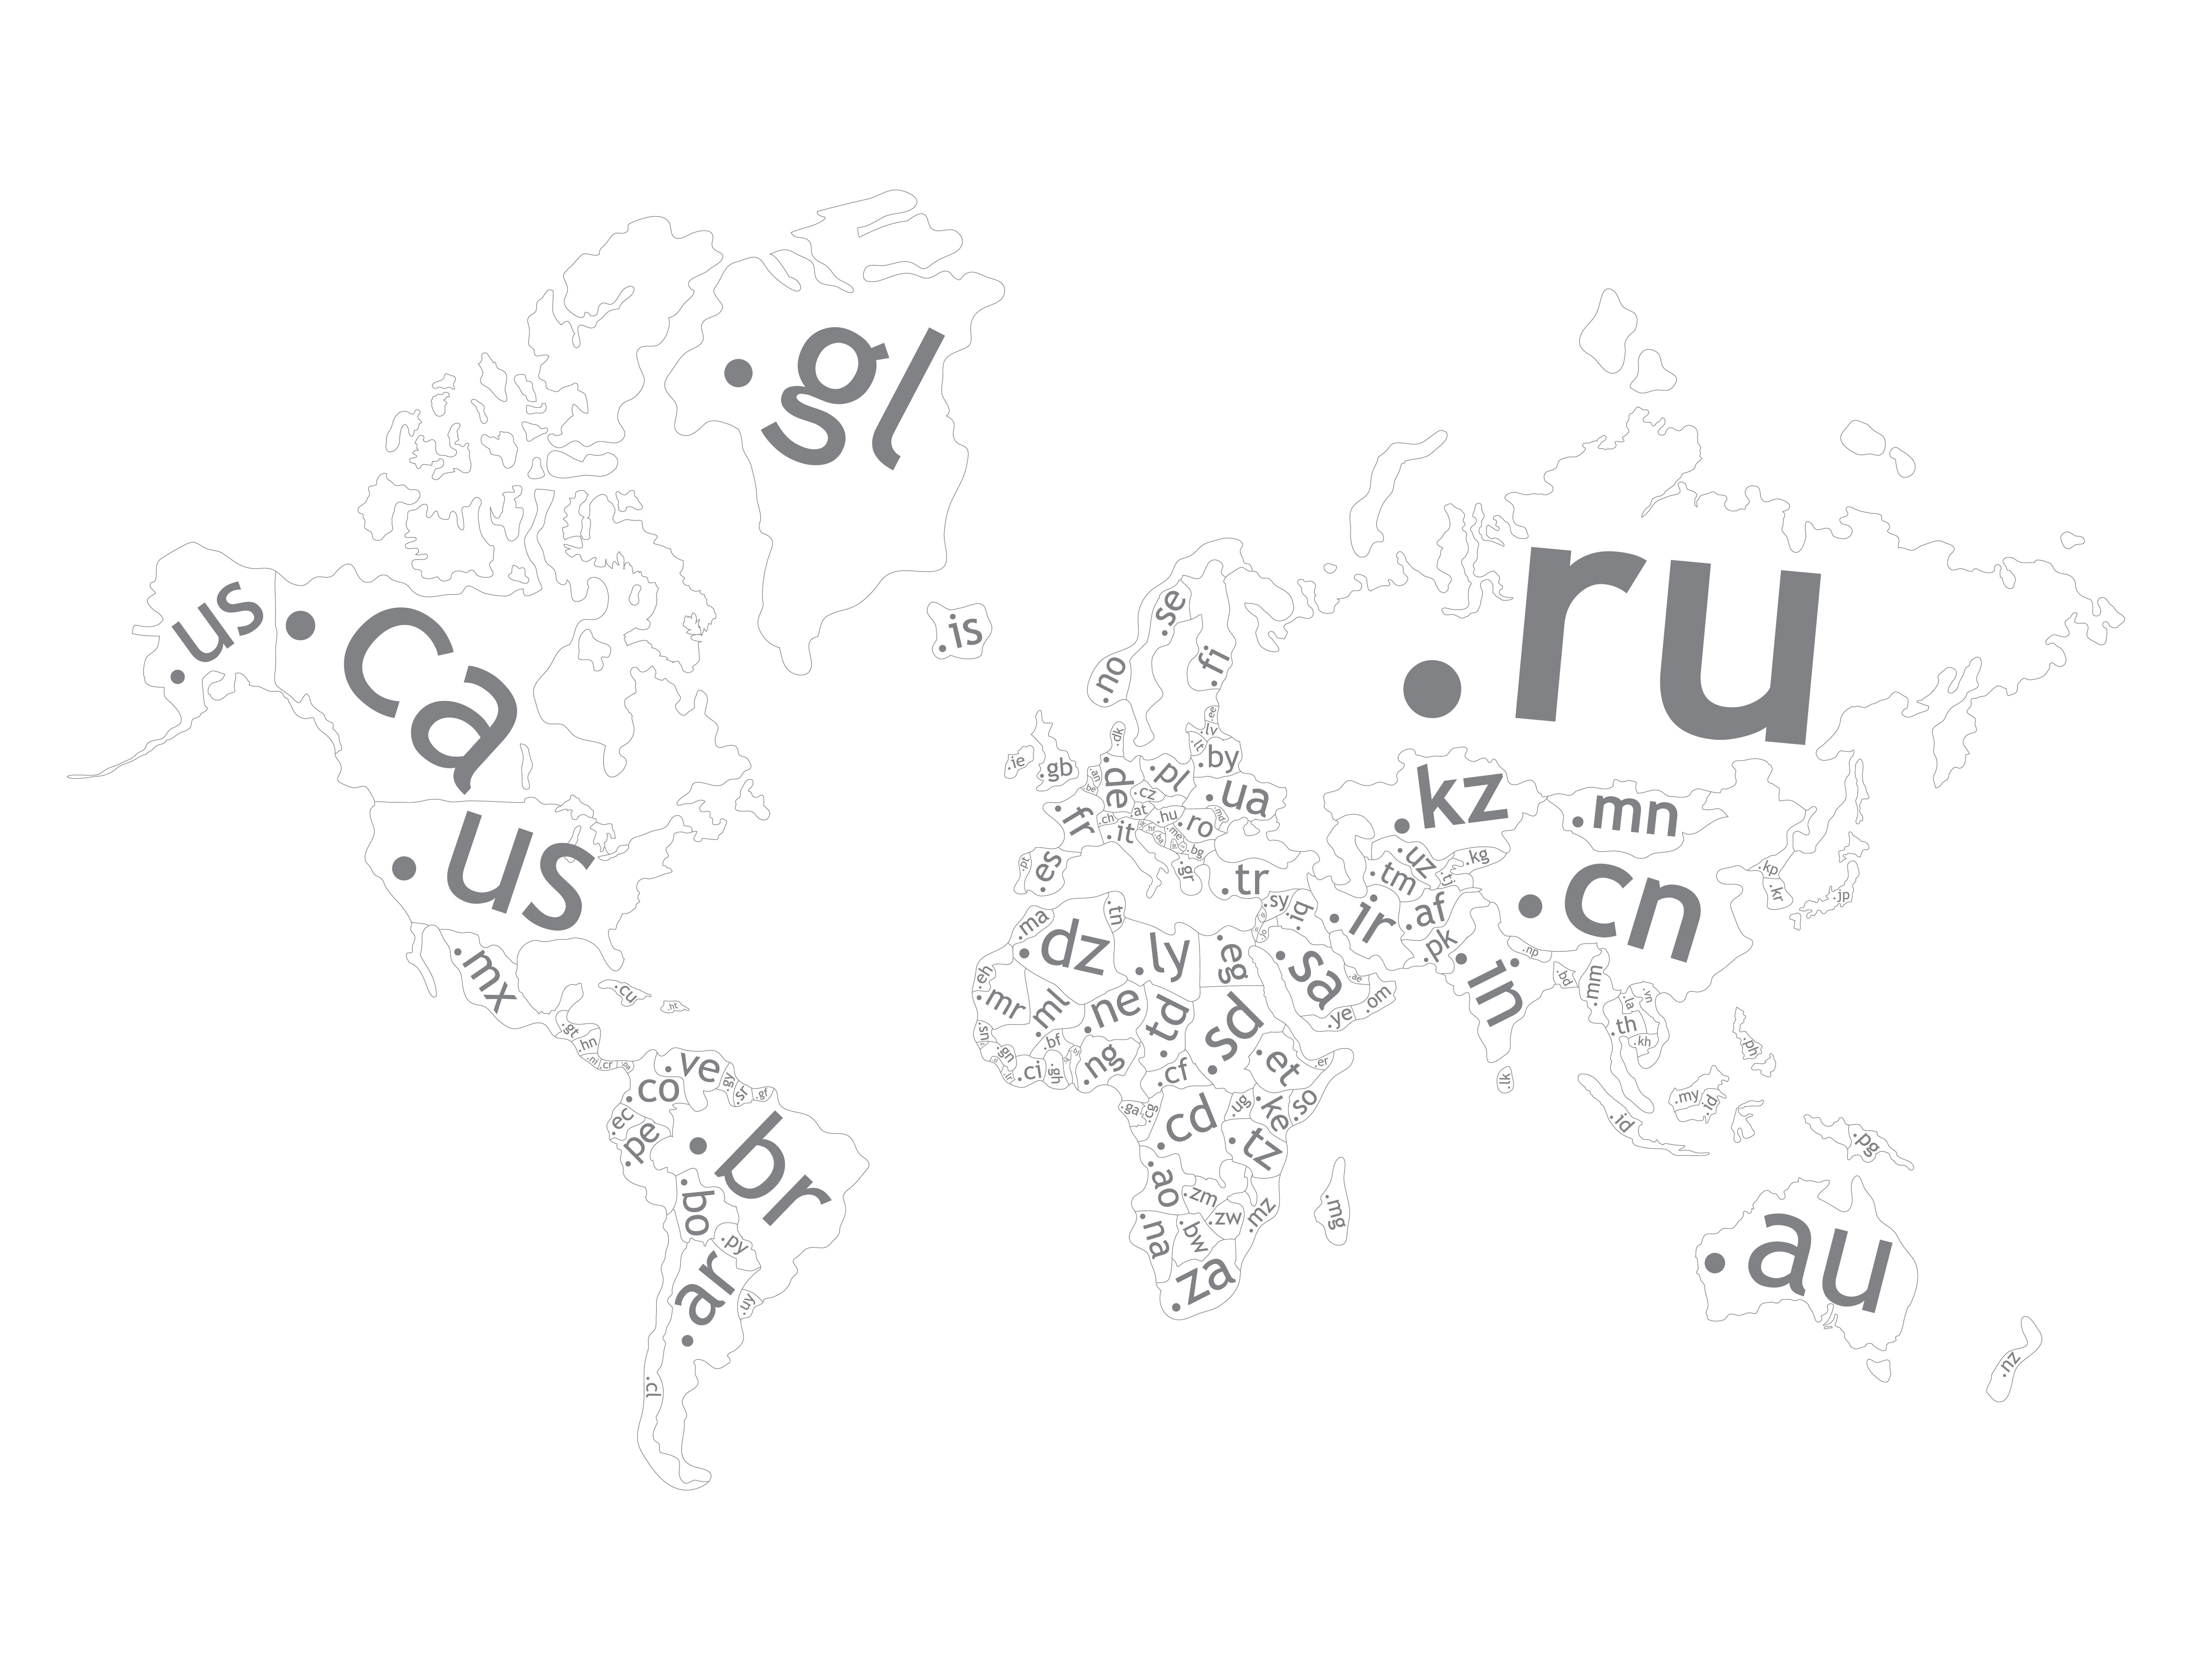 country-domain